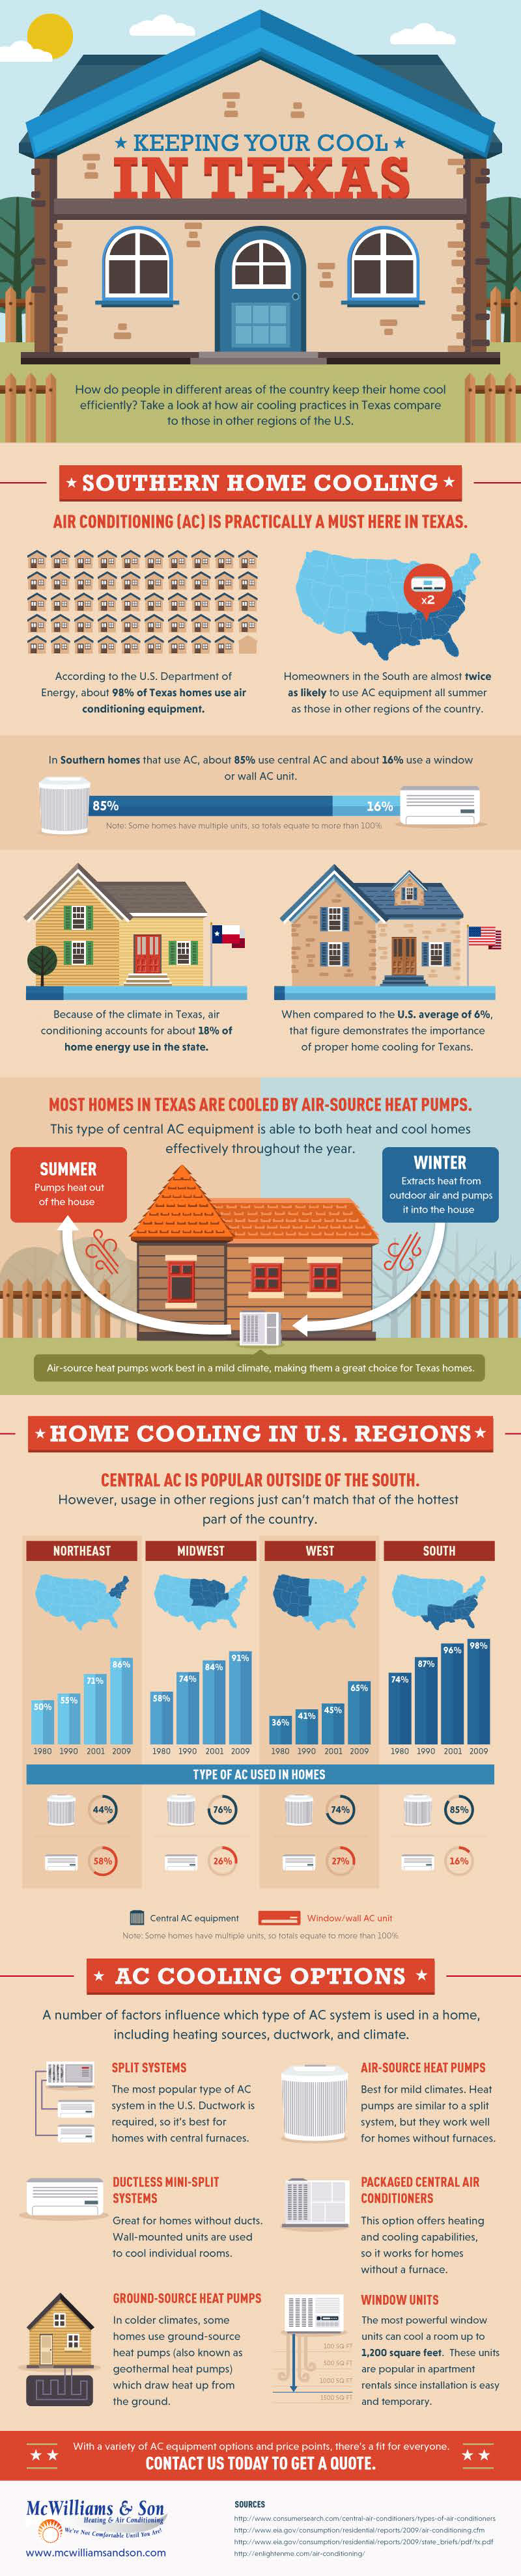 Keeping Your Cool in Texas - Infographic